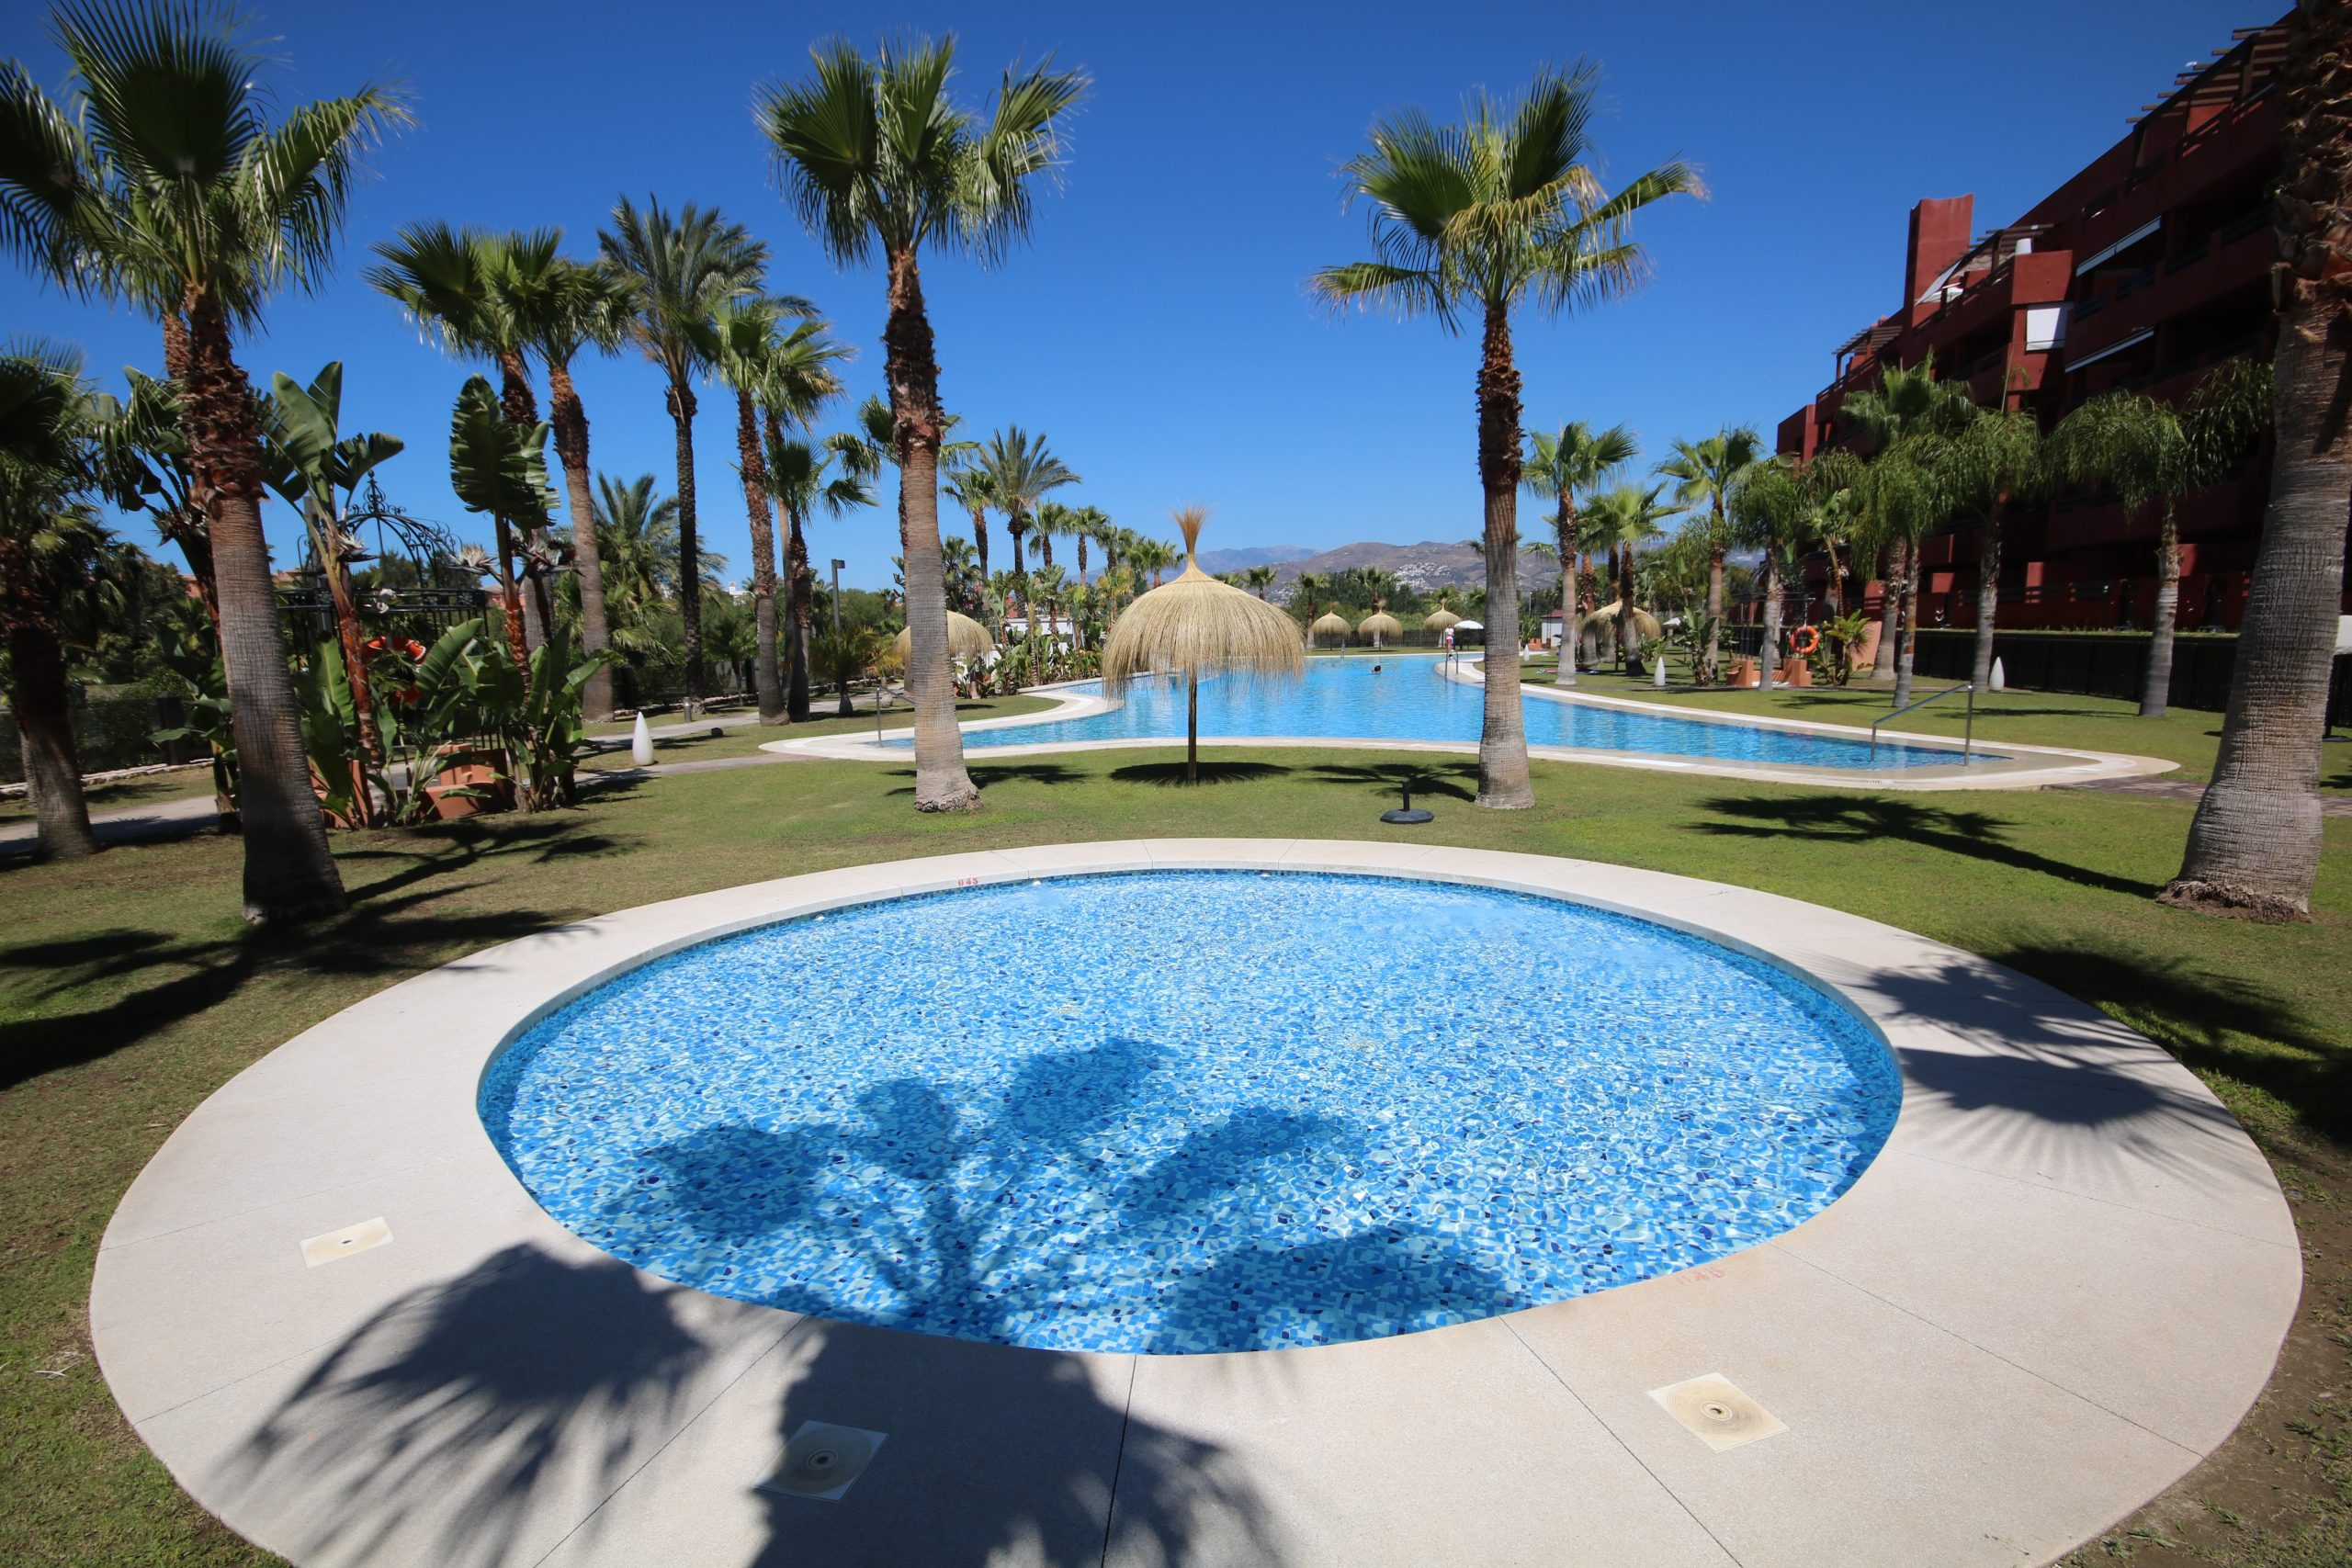 Above-Ground and In-Ground Pools: What's the Difference?